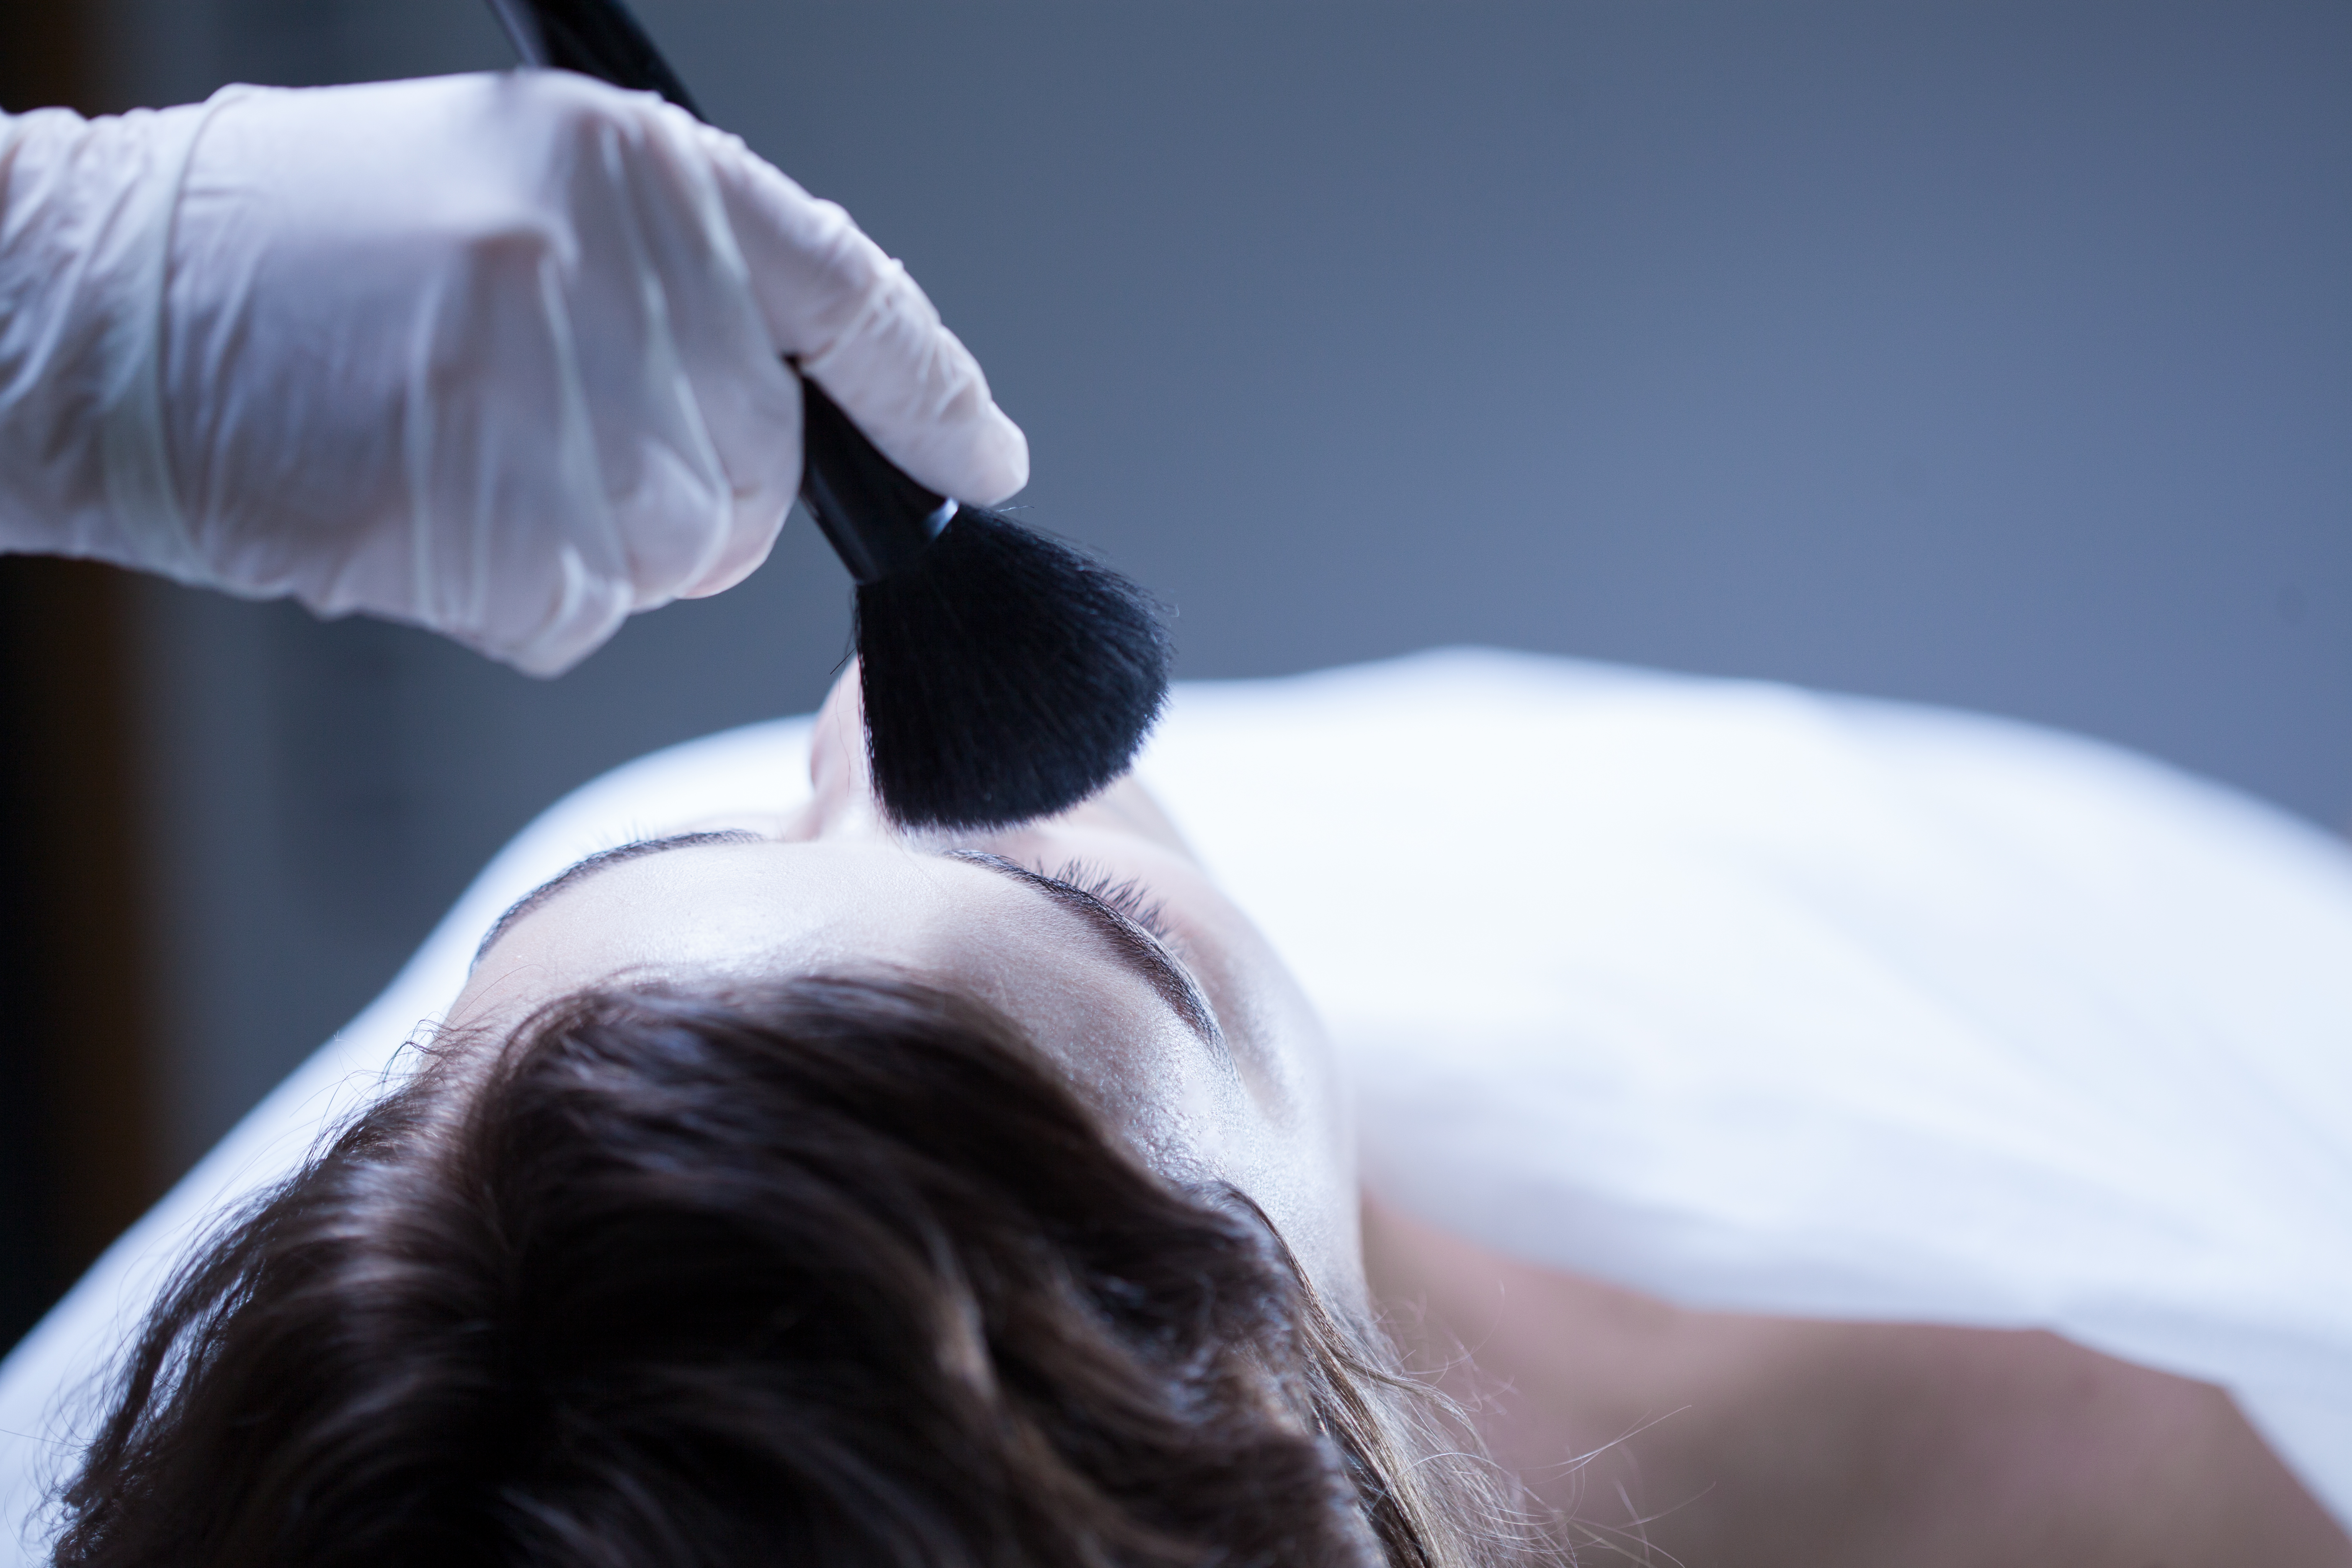 The art of doing makeup on a dead body